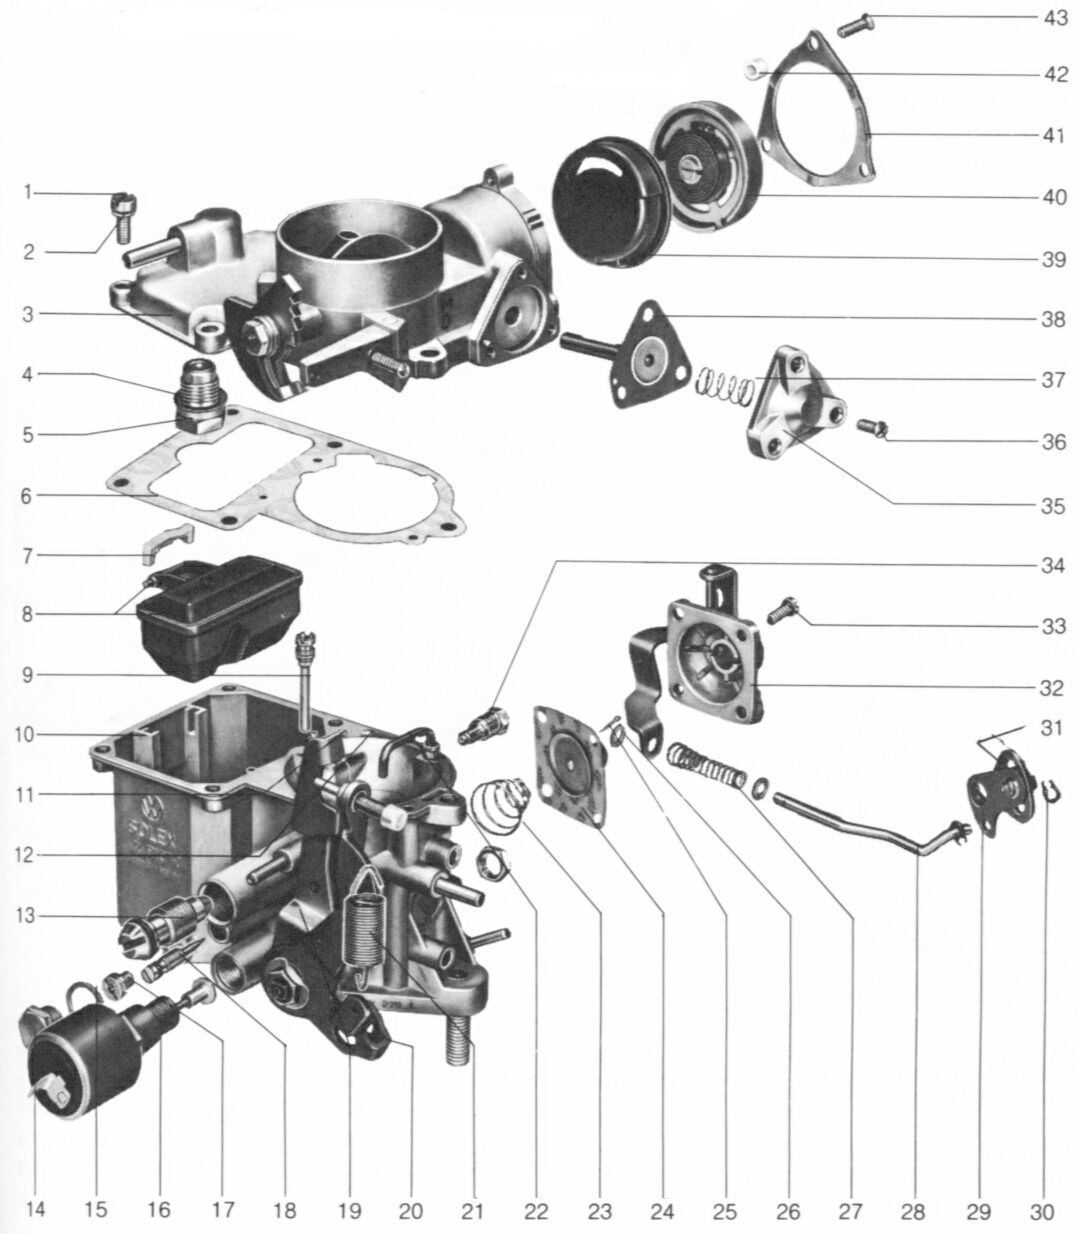 34 Pict 3 Carburetor Overhaul Empi Wiring Diagram A General Exploded View Of The 34pict Is Shown In Following That Listing Parts Giving Nomenclature And Part